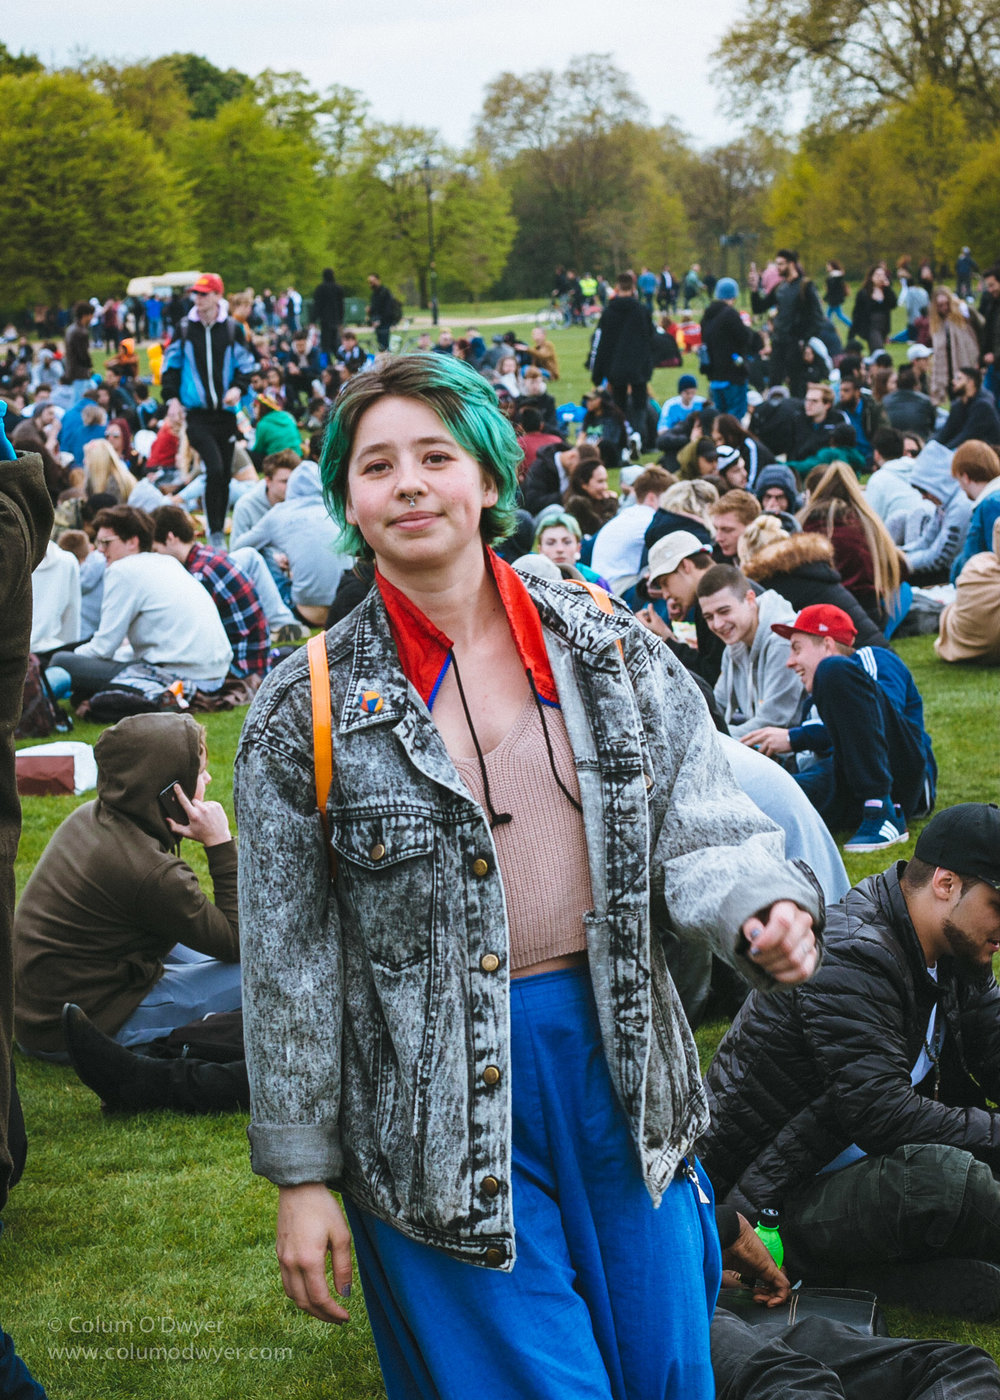 420 Hyde Park London - Apr 2017 - IMG_1582.jpg